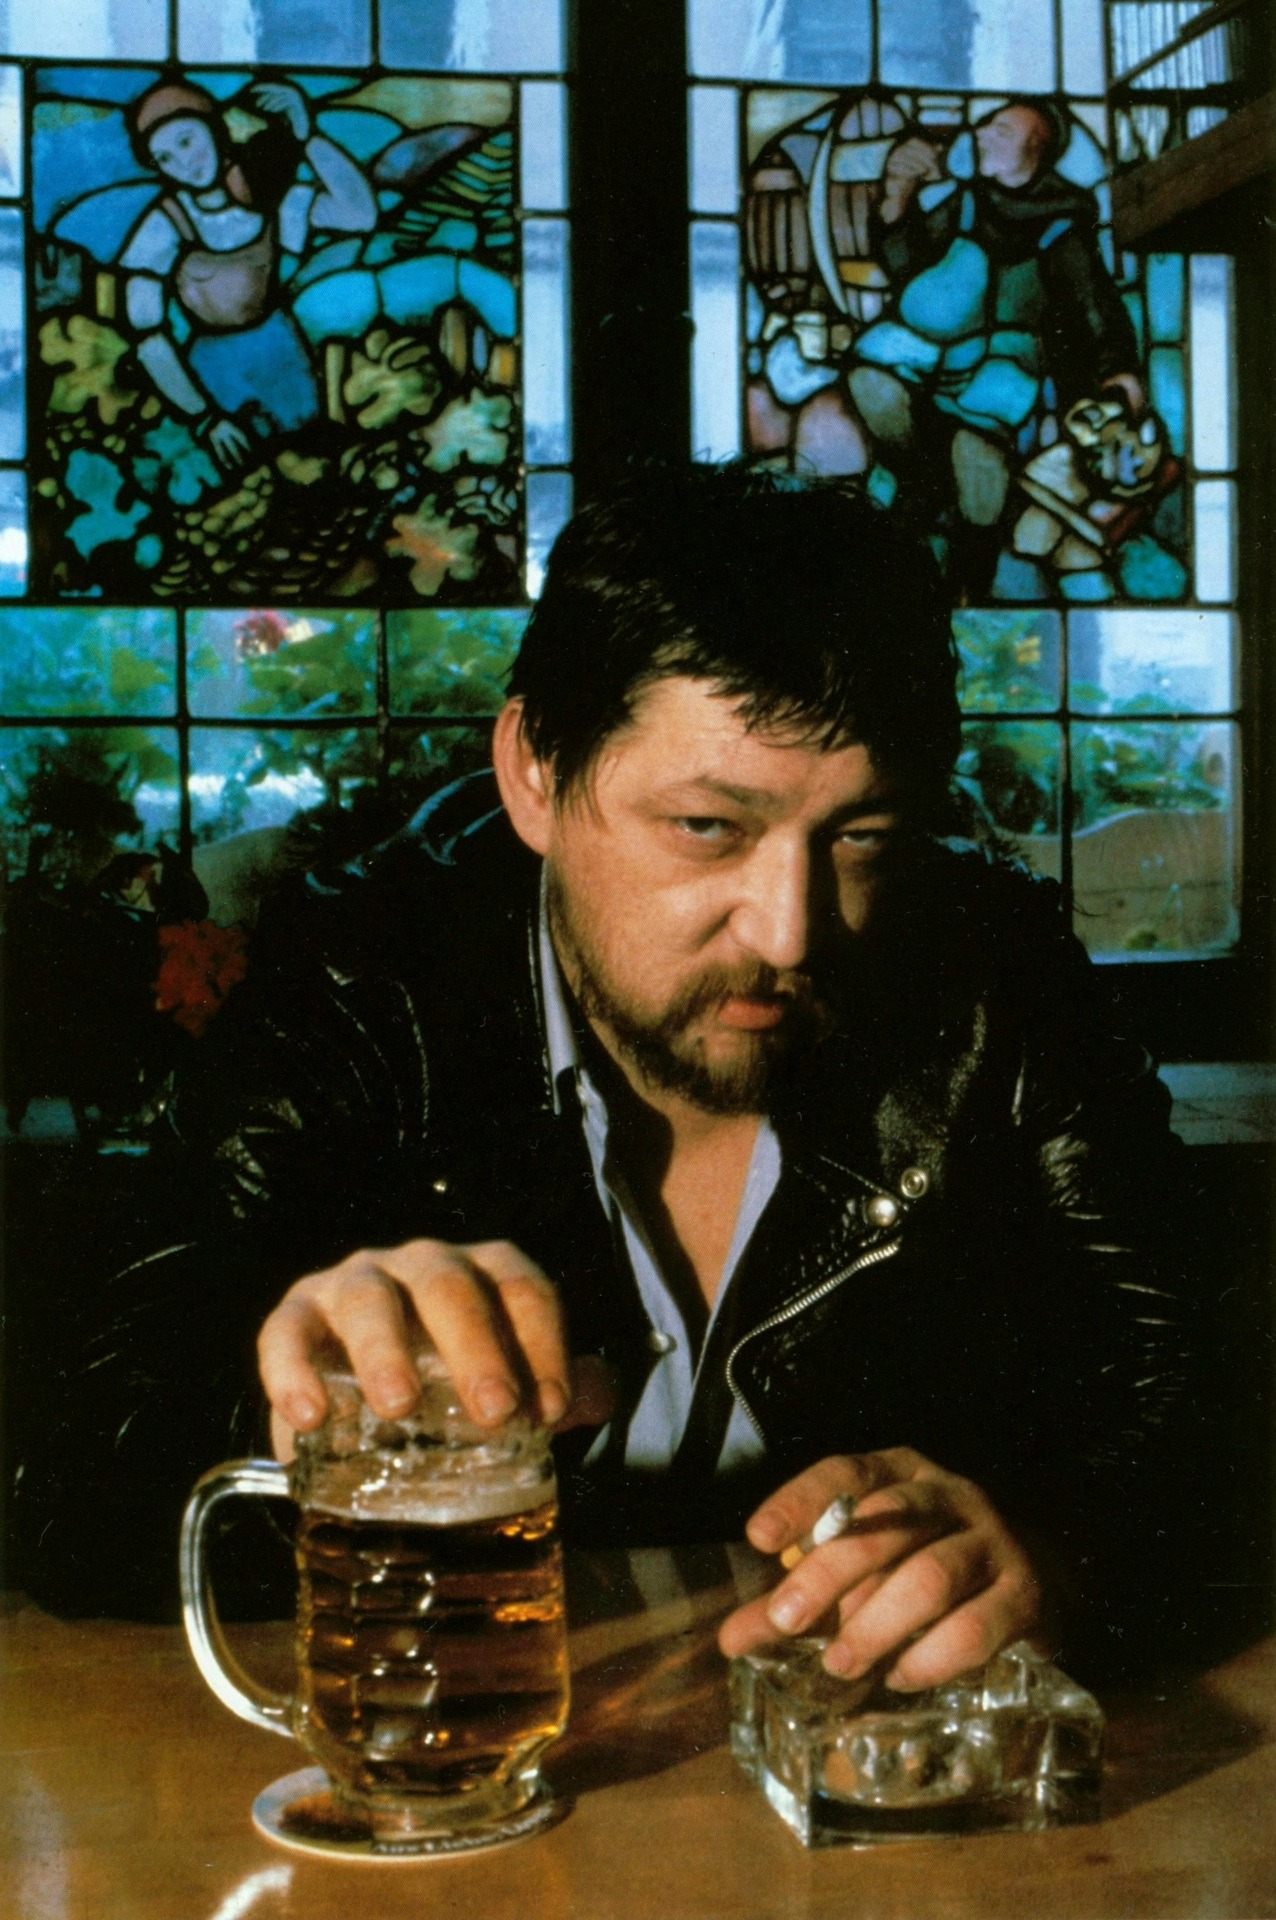 Helmut Newton took this photograph of Rainer Werner Fassbinder in Munich, 1980.